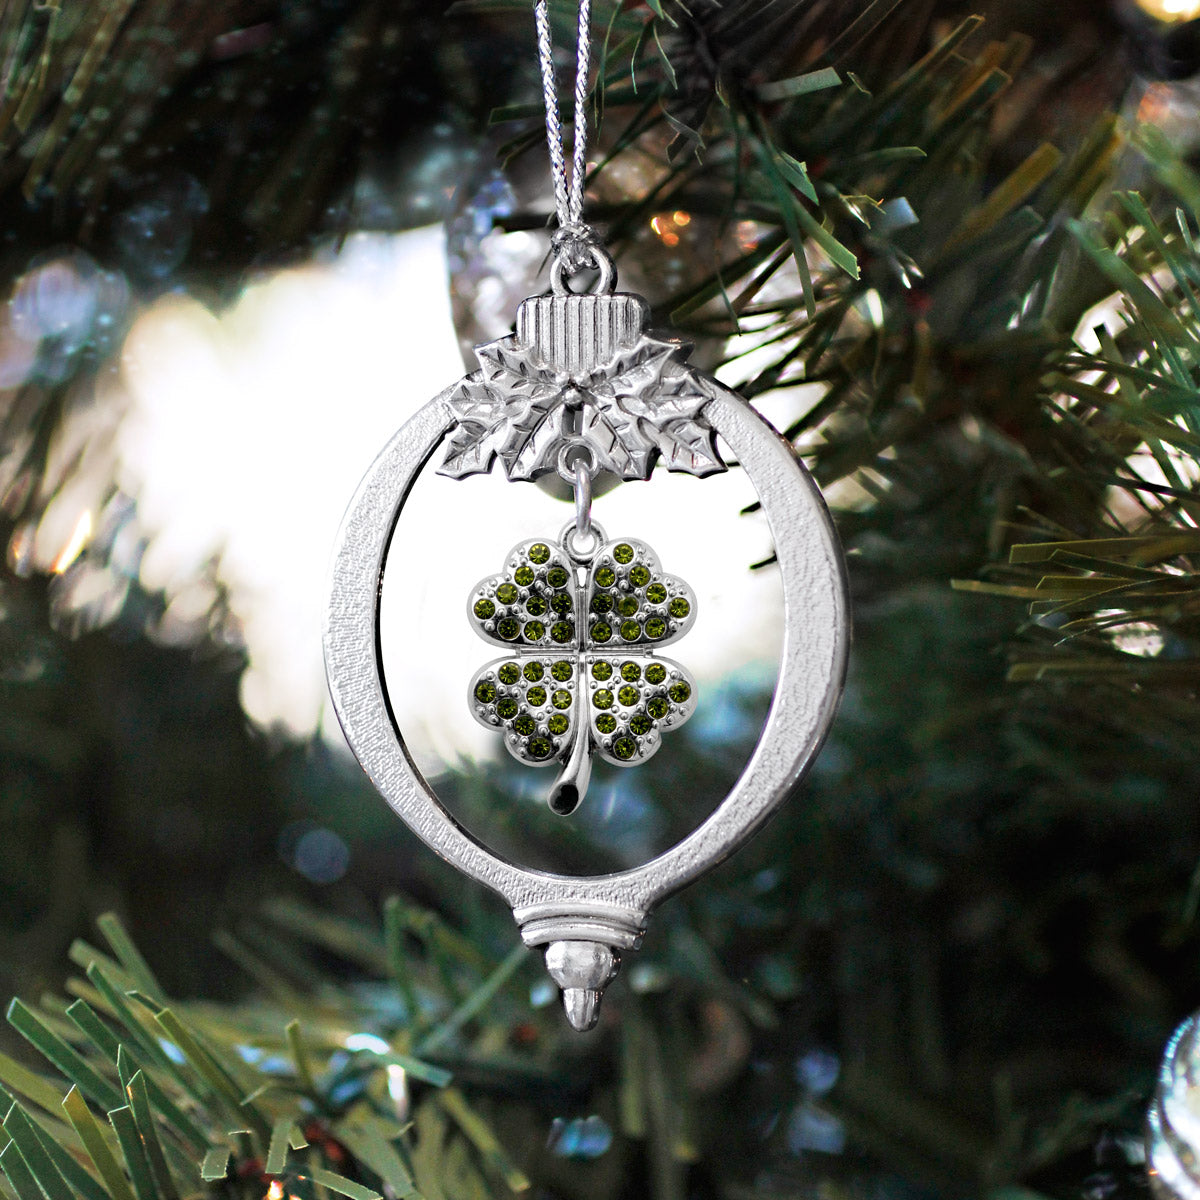 1.0 Carat Four Leaf Clover Charm Christmas / Holiday Ornament